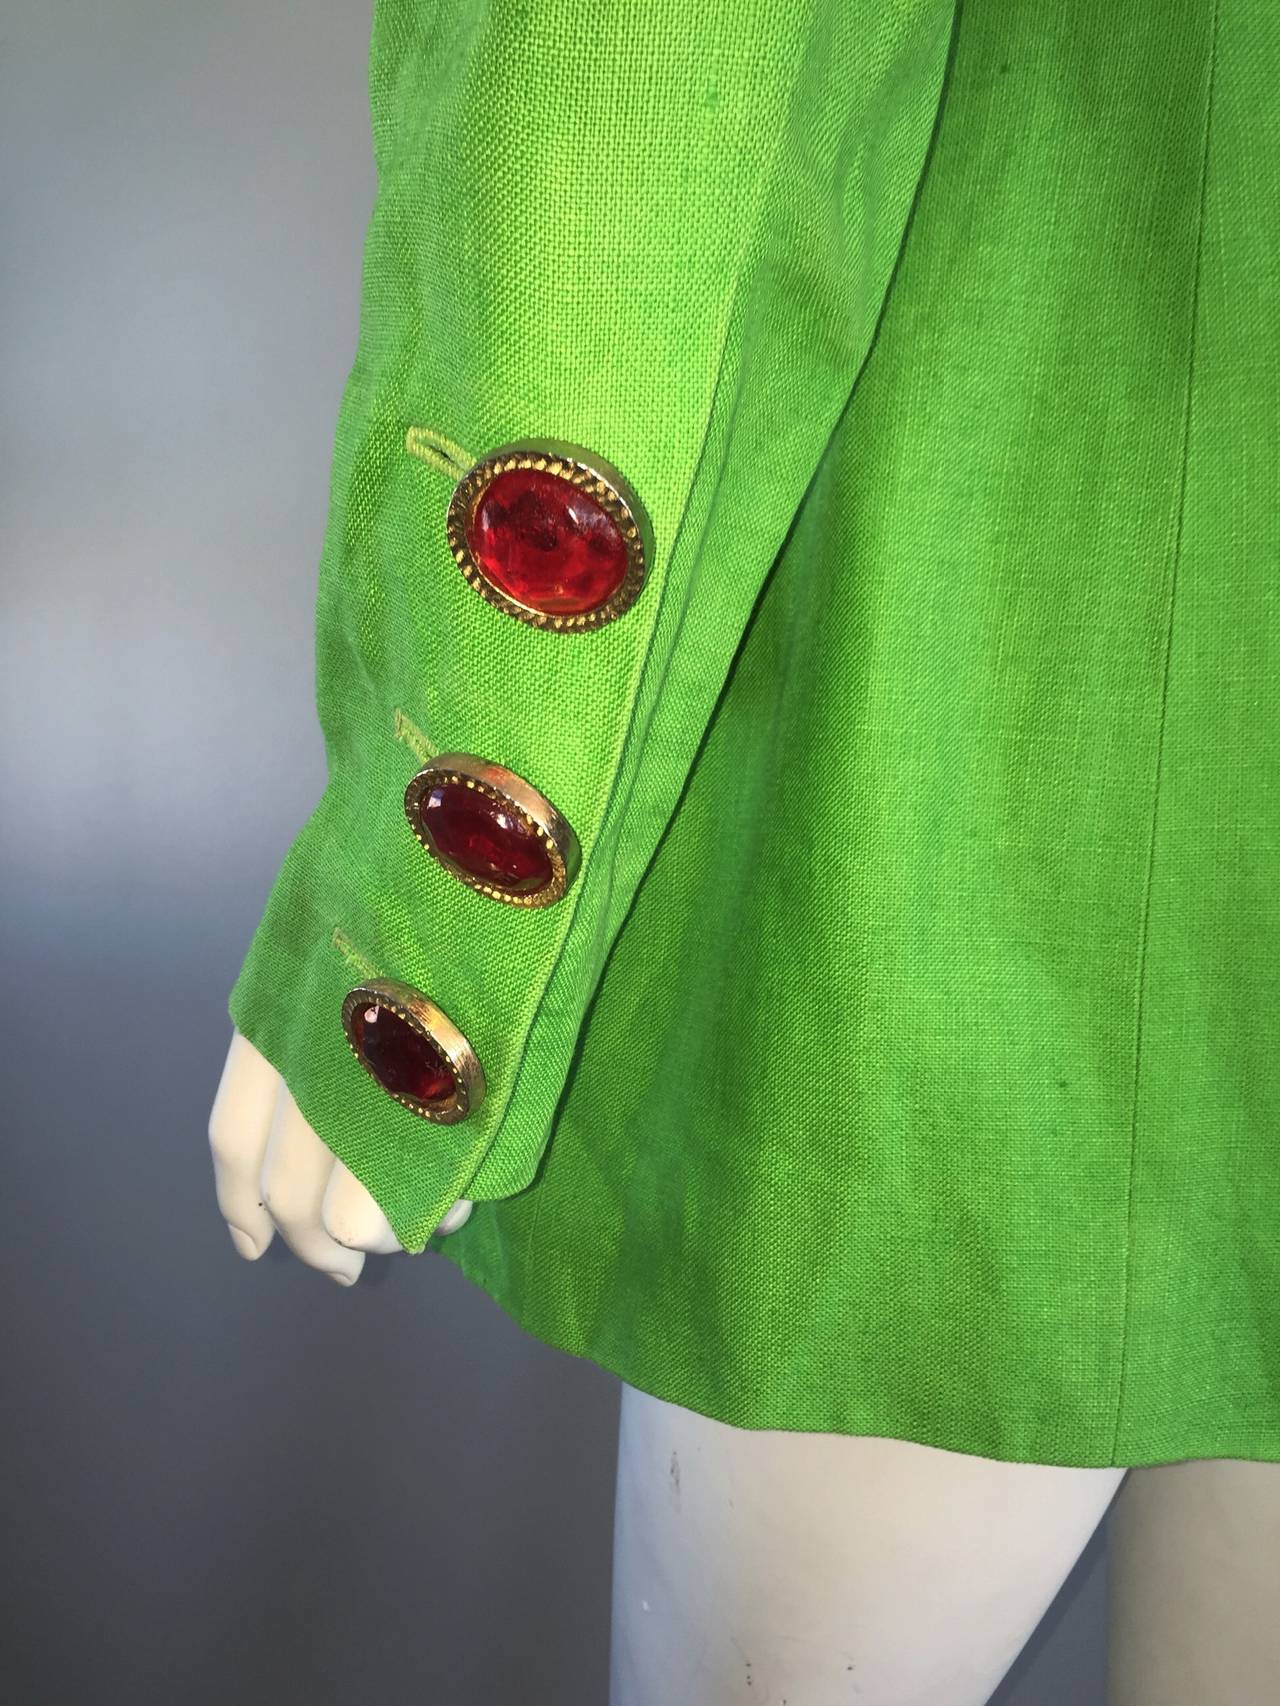 Incredible Vintage Gemma Kahng Green + Red Blazer w/ Gripoix Buttons For Sale 4